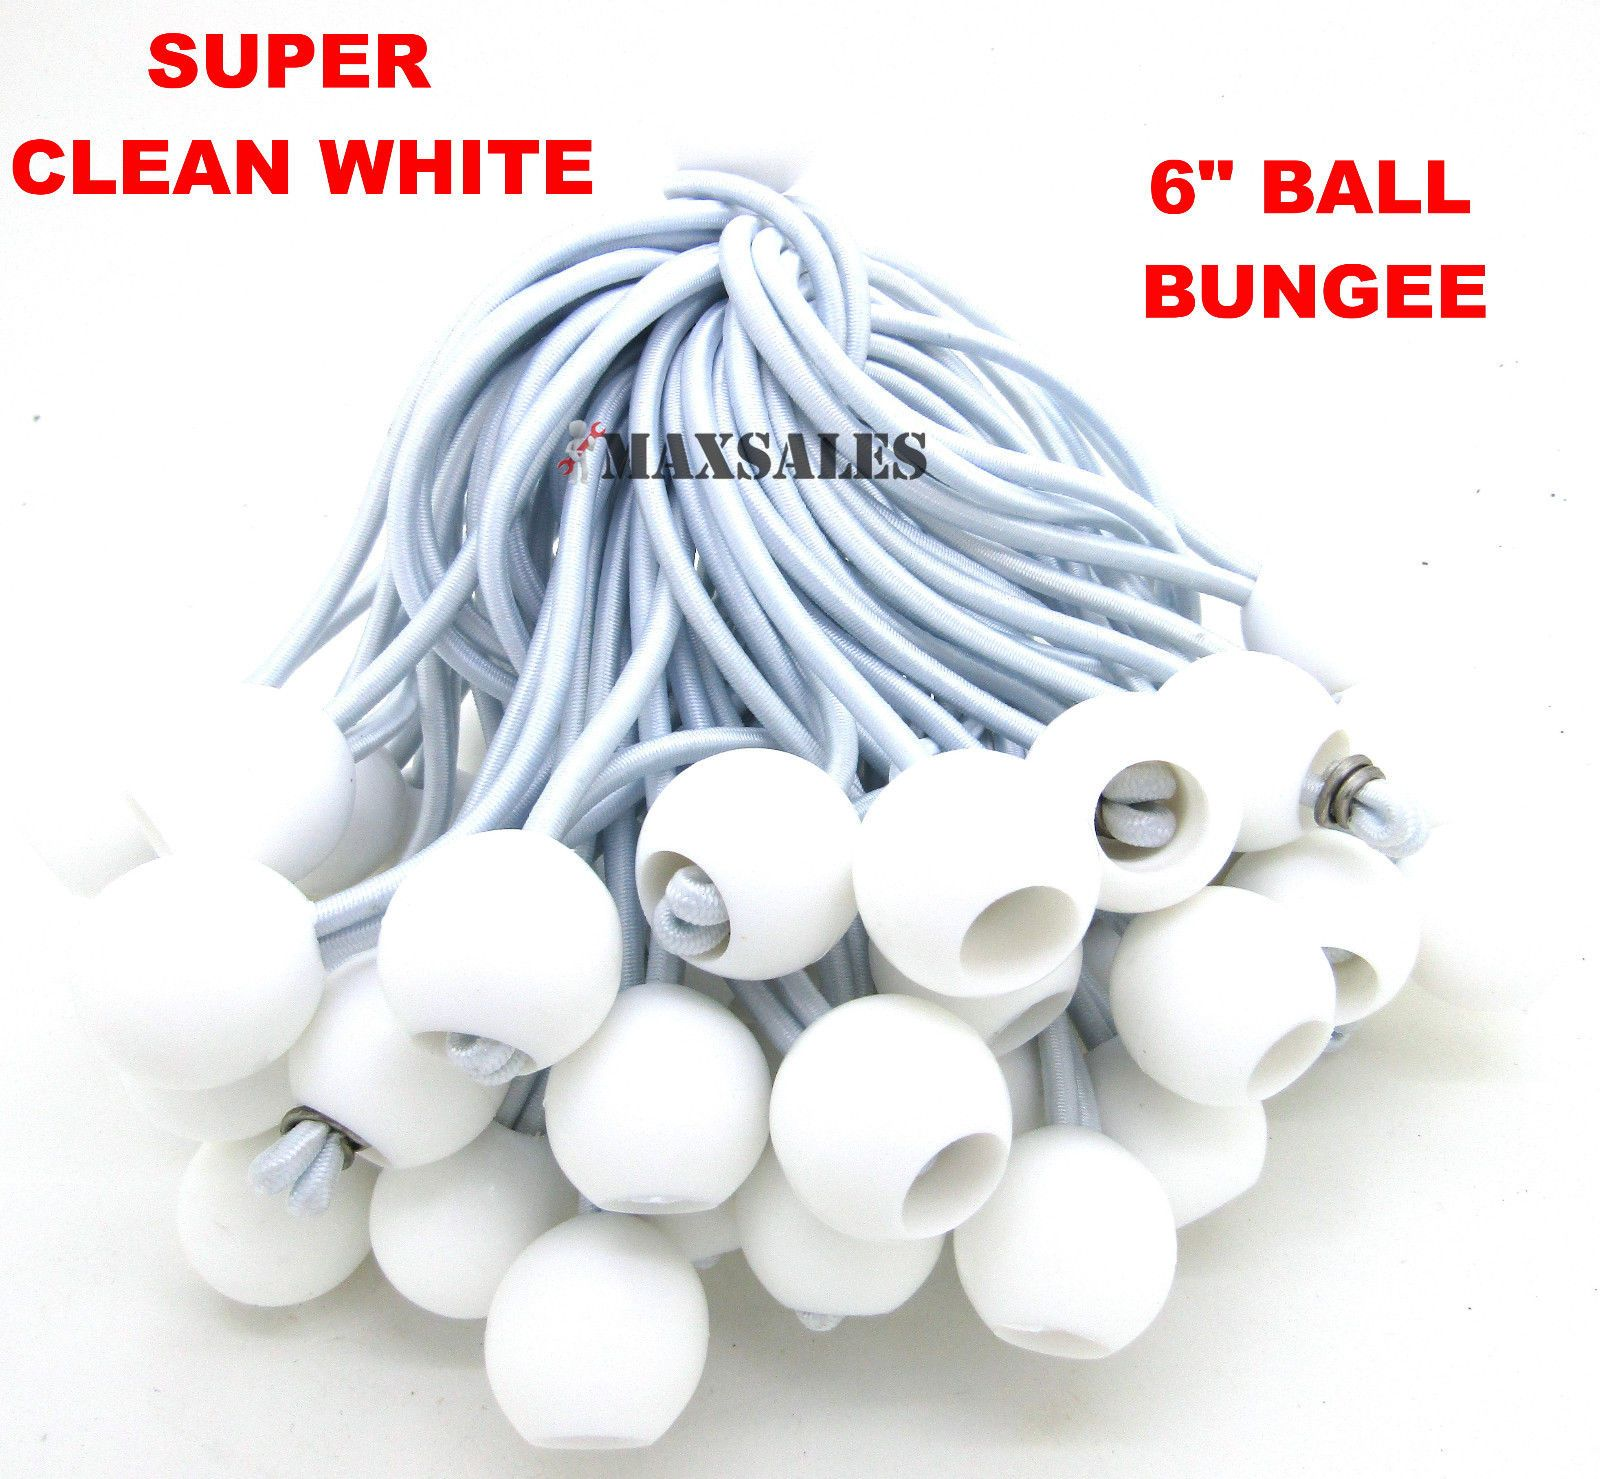 Tent and Canopy Accessories 36120 (100) 6 White Ball Bungee Cord Tarp Bungee  sc 1 st  Pinterest & Tent and Canopy Accessories 36120: (100) 6 White Ball Bungee Cord ...